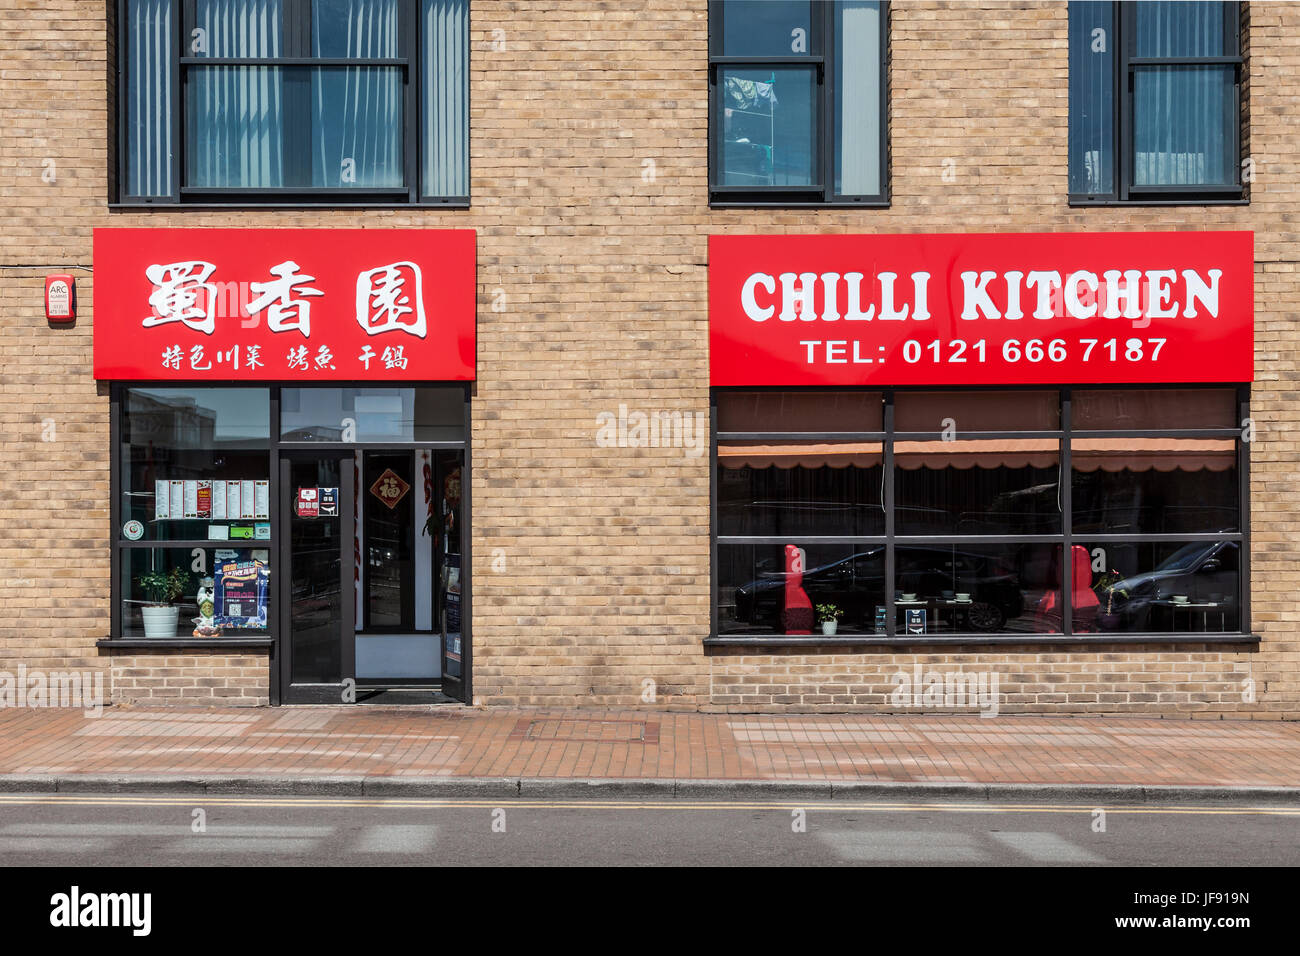 Chilli Kitchen Chinese Restaurant exterior, windows and entrance ...